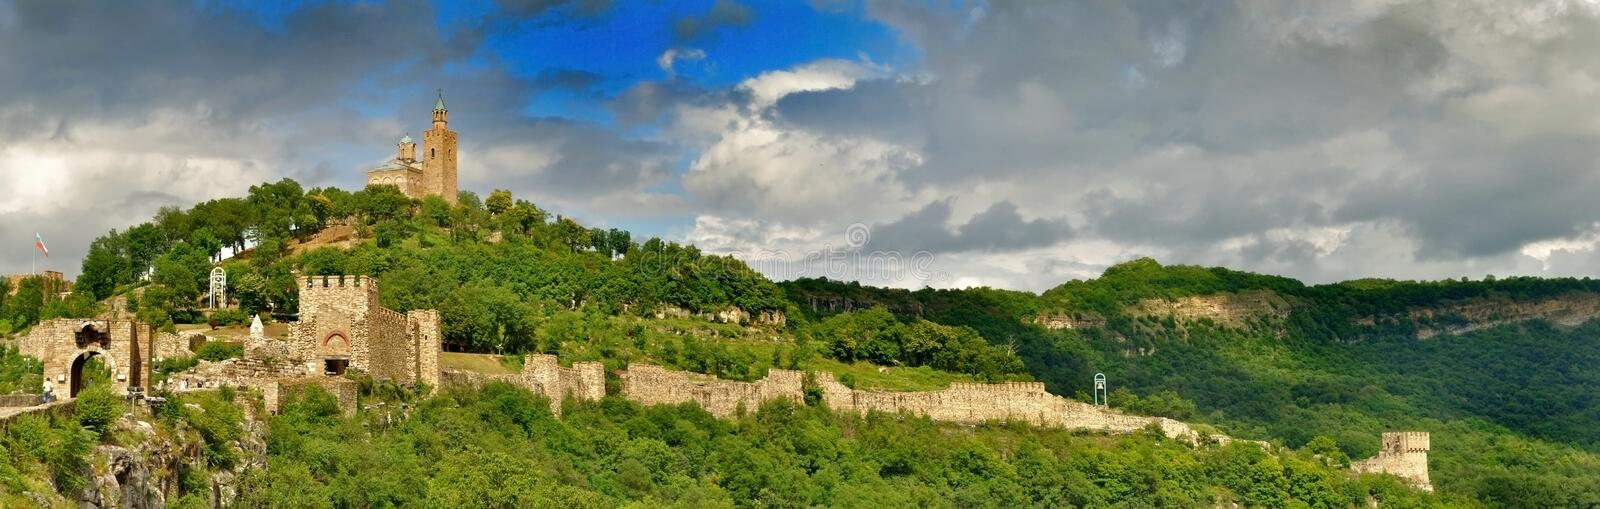 Tsarevets fortress royalty free stock images